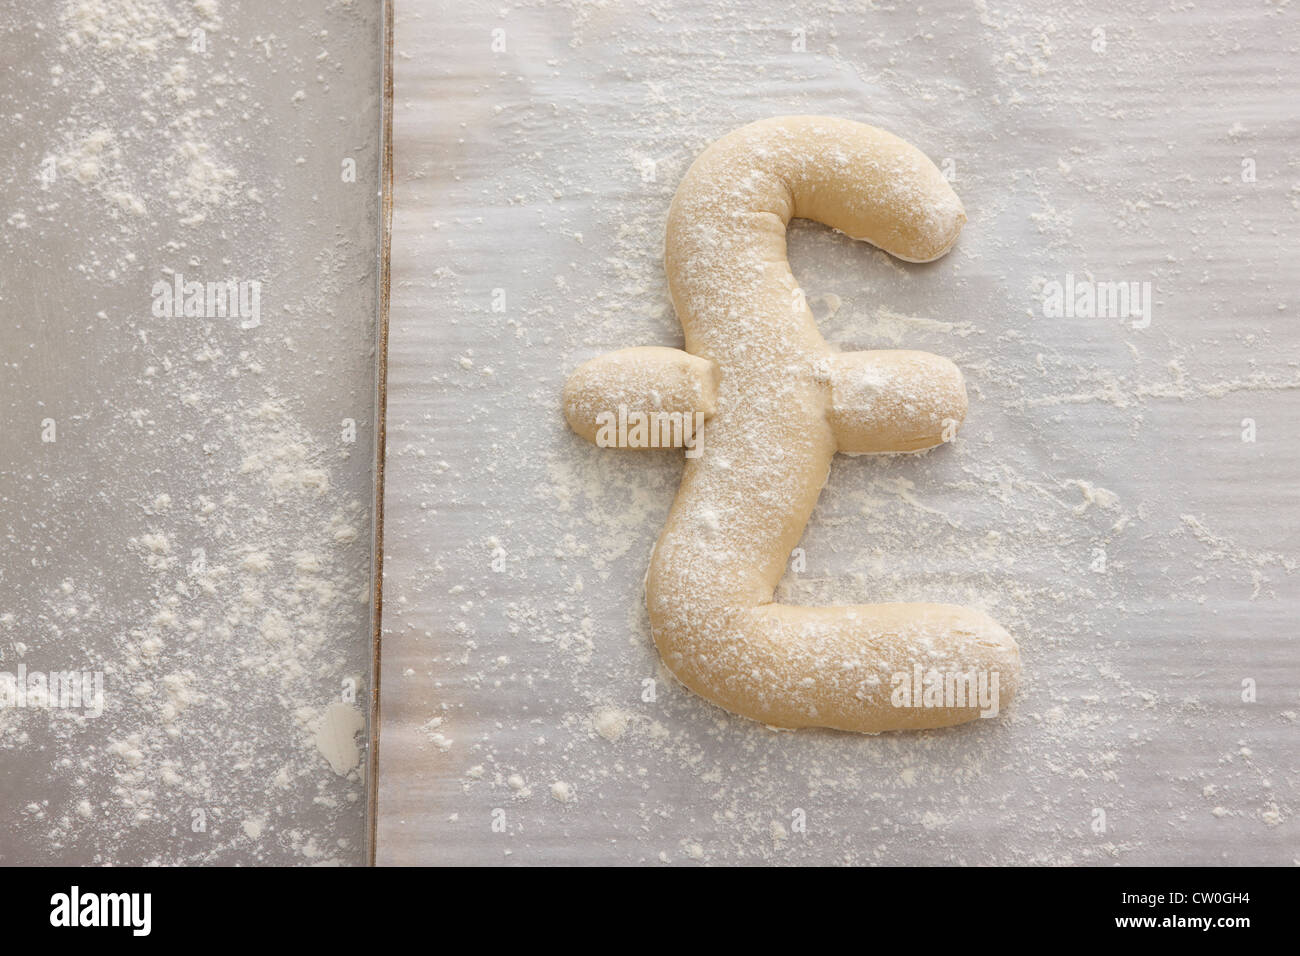 Bread dough shaped in pound symbol - Stock Image